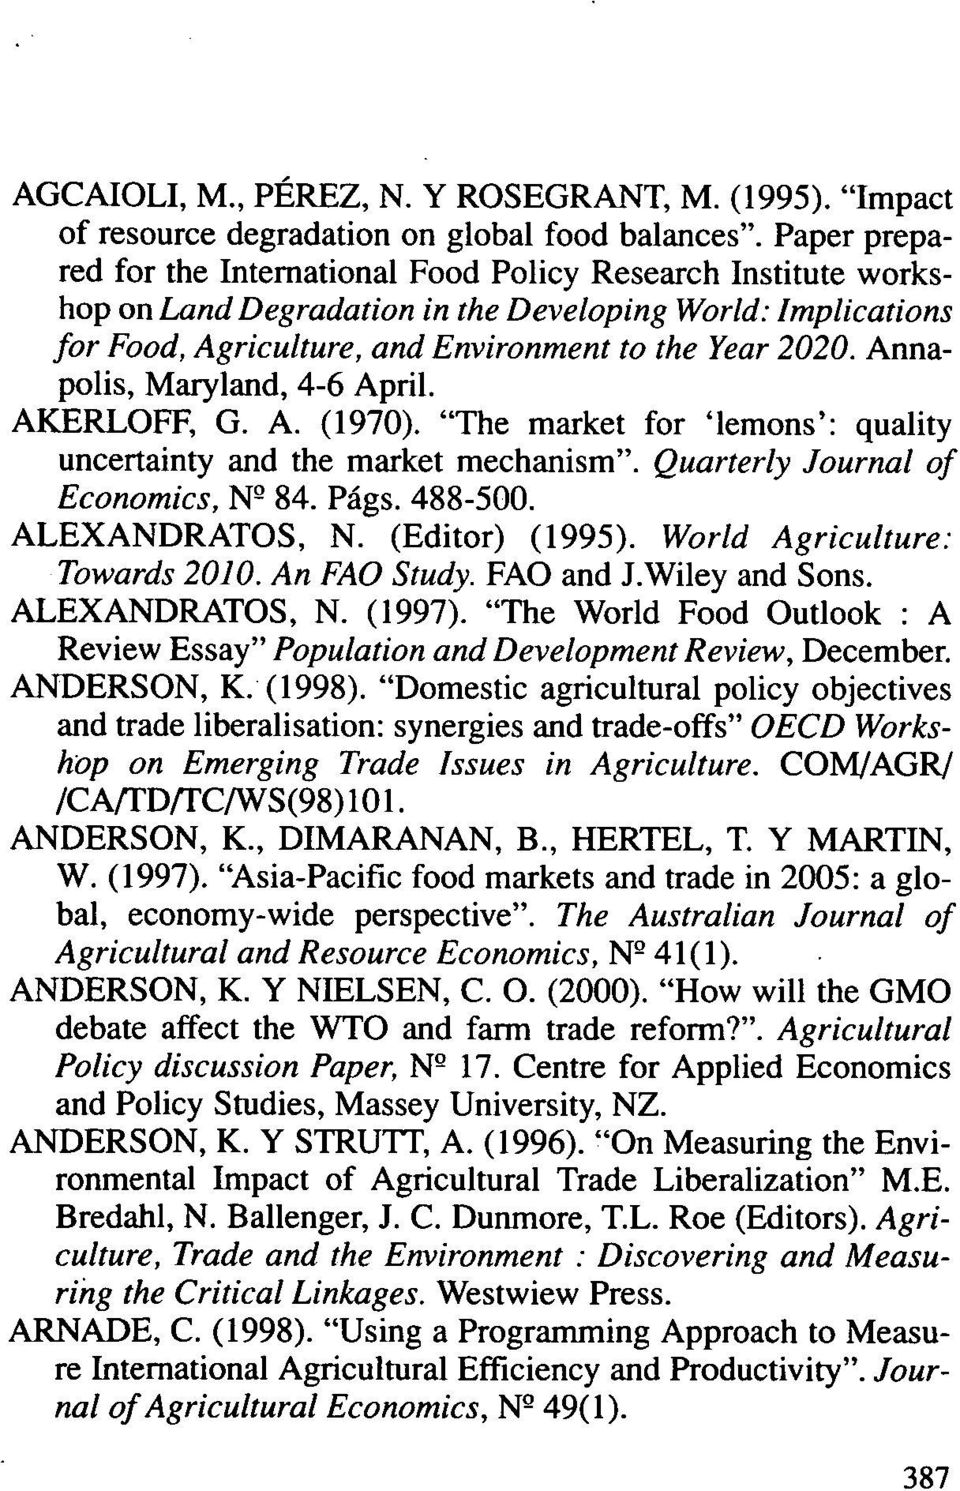 "Annapolis, Maryland, 4-6 April. AKERLOFF, G. A. (1970). ""The market for `lemons': quality uncertainty and the market mechanism"". Quarterly Journal of Economics, N 84. Págs. 488-500. ALEXANDRATOS, N."